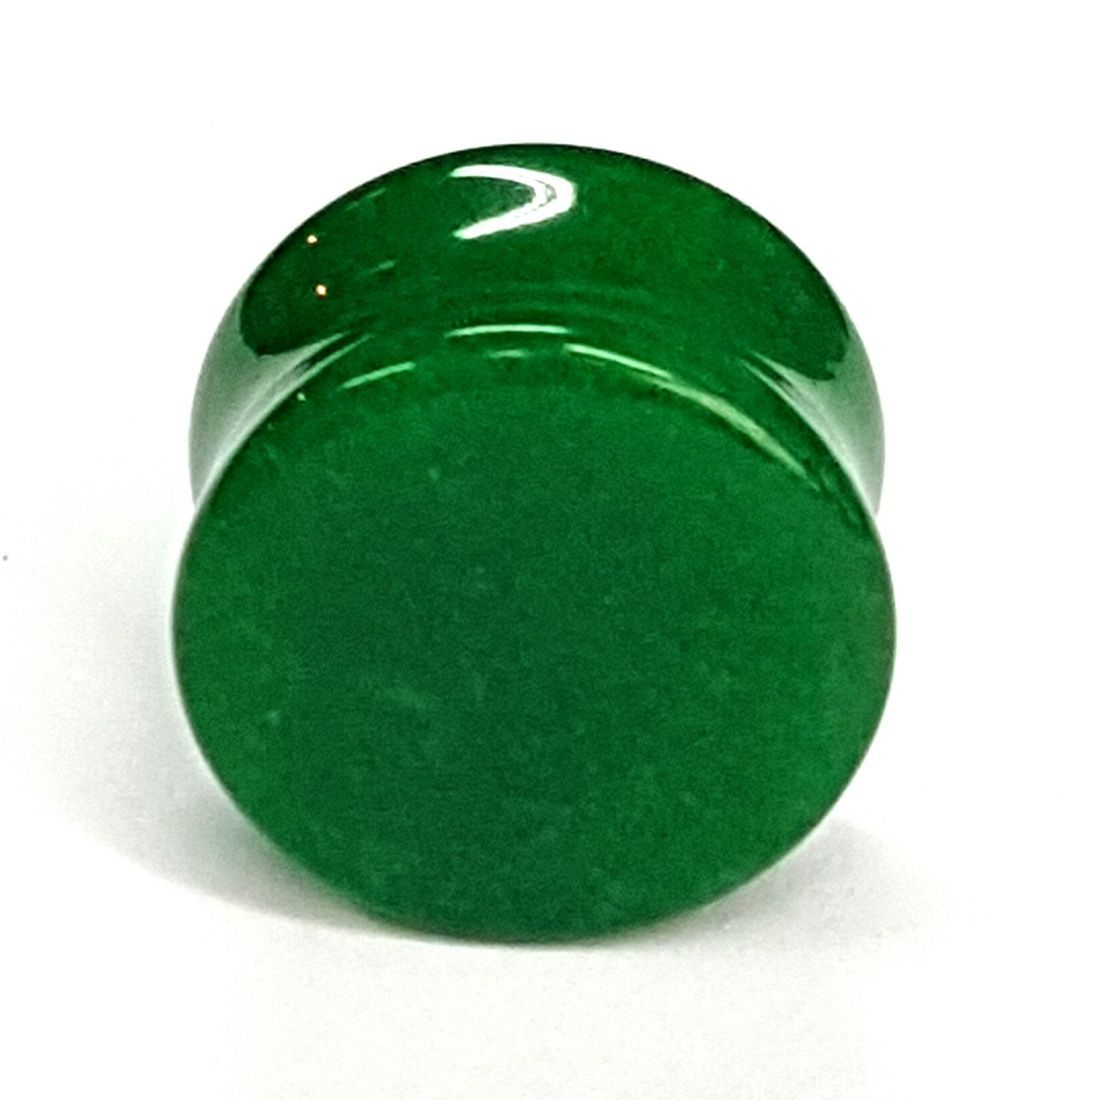 Green quartz natural stone plug available at Kazbah online and our Leicester City Centre store